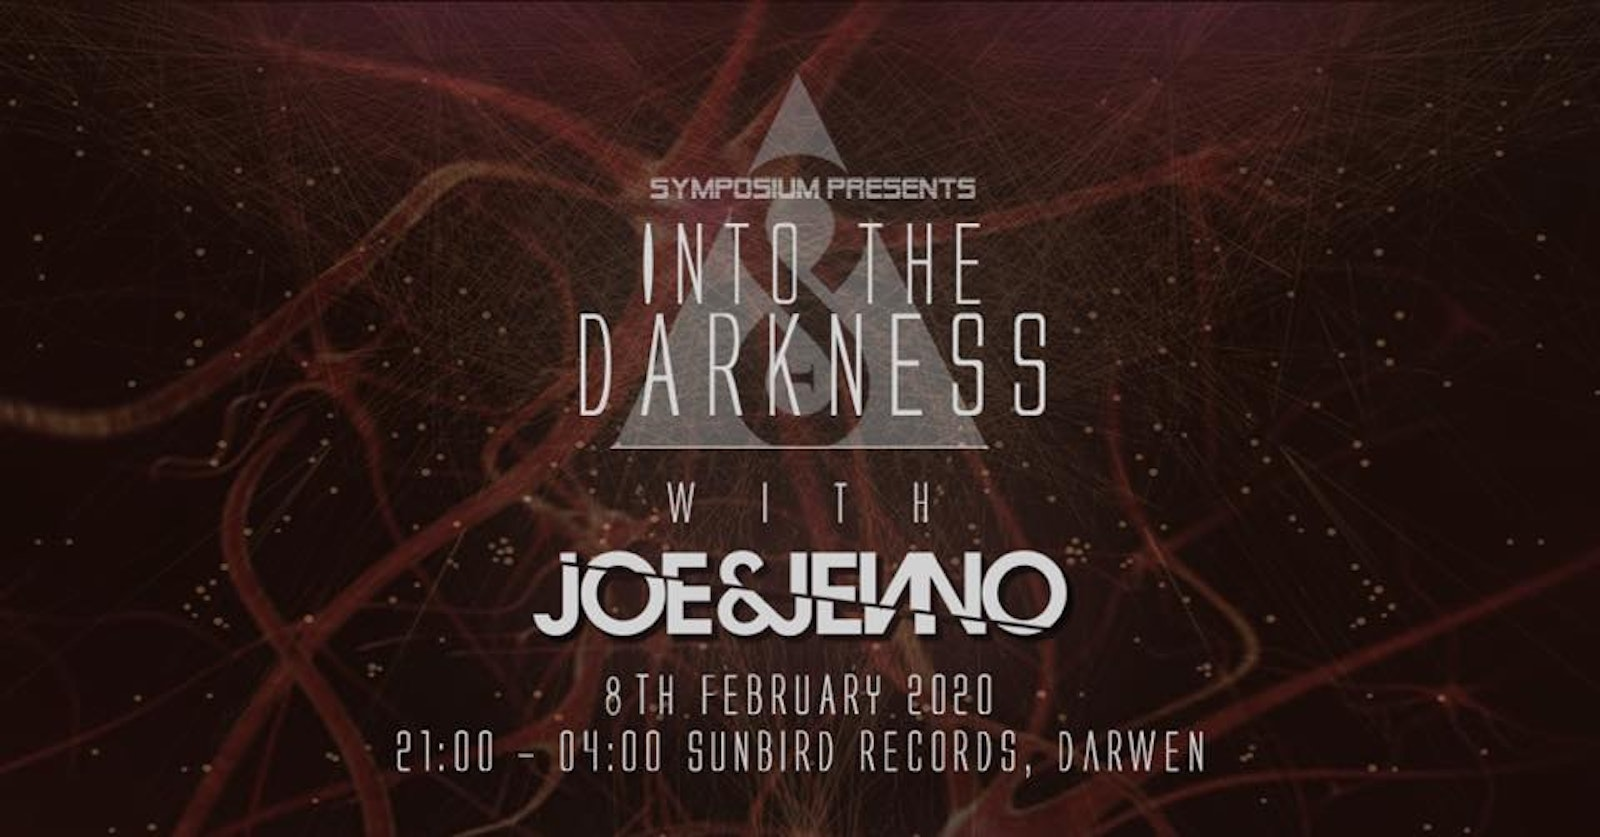 Symposium Presents: Into The Darkness